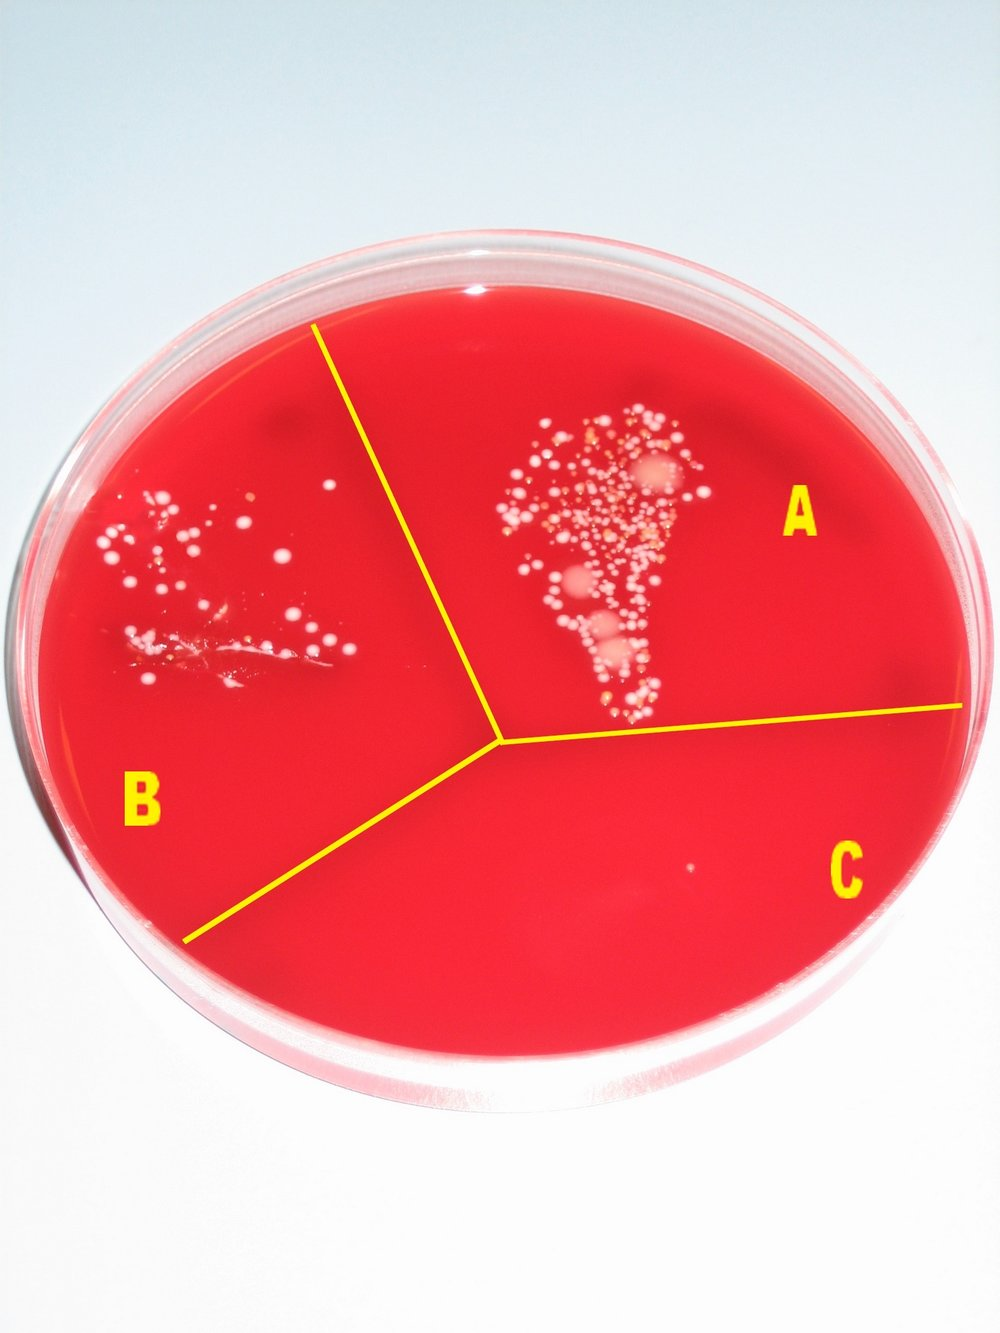 """  Microbial growth on a blood   agar plate   without any procedure (sector A), after washing hands (sector B), and after disinfecting hands with alcohol (sector C).""    You can see that washing hands with just soap and water barely does anything to prevent disease being spread from doctor to patient, while full disinfection does a very good job."